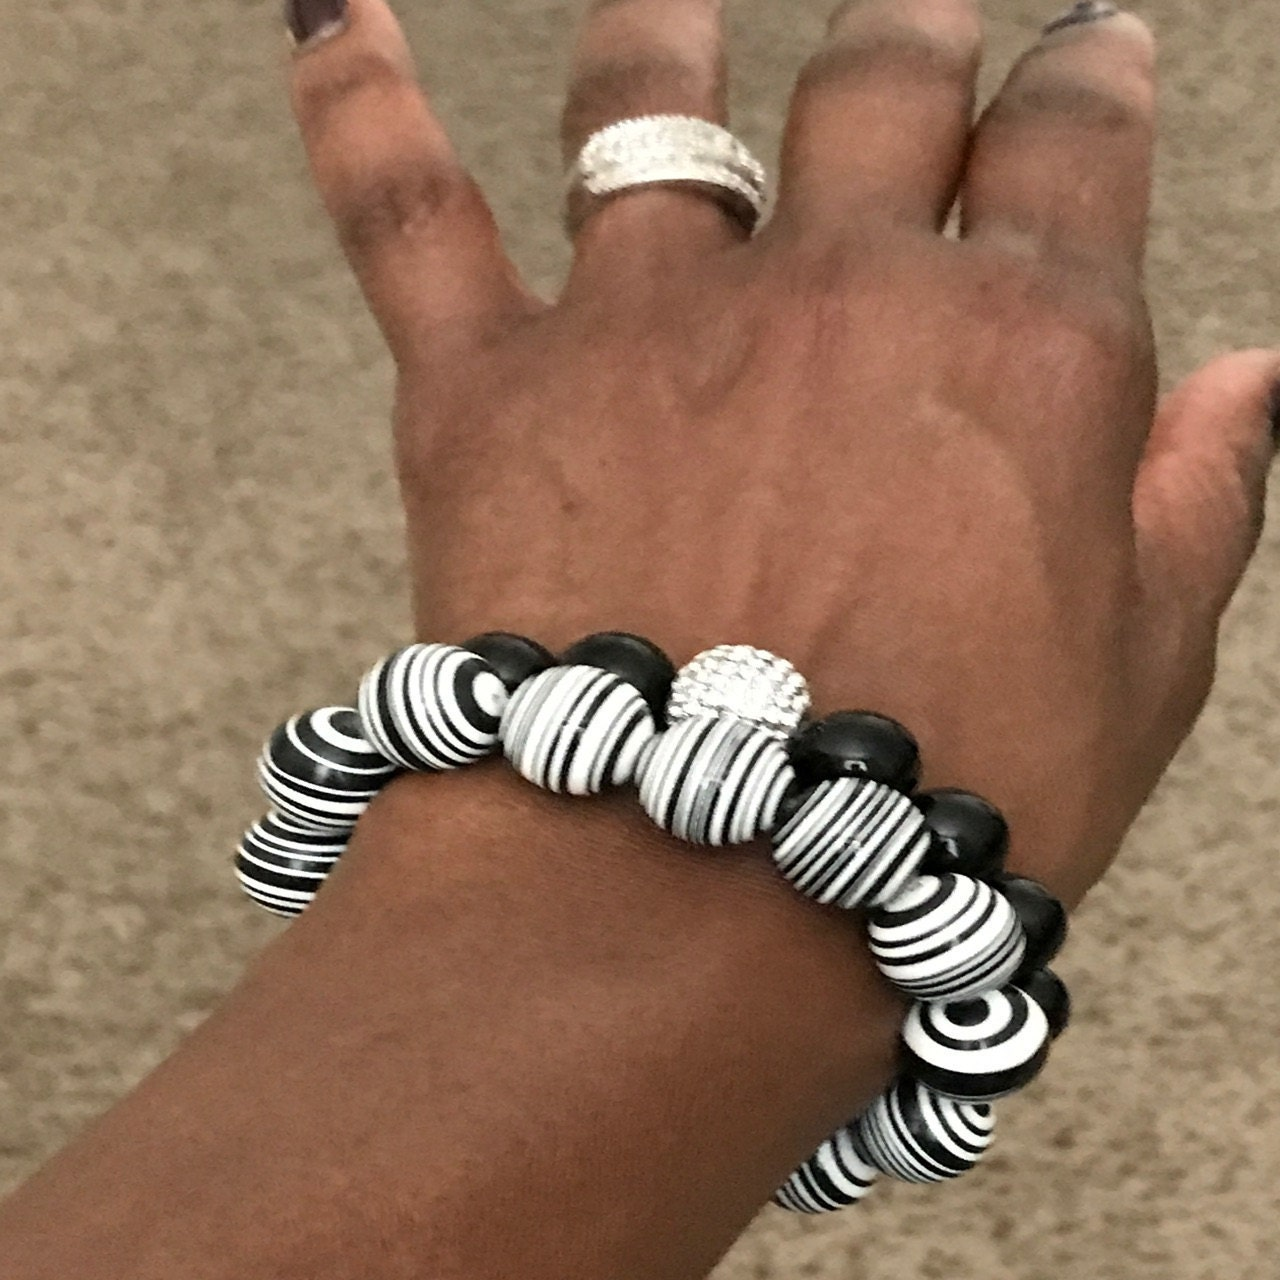 Shelia Jenkins added a photo of their purchase